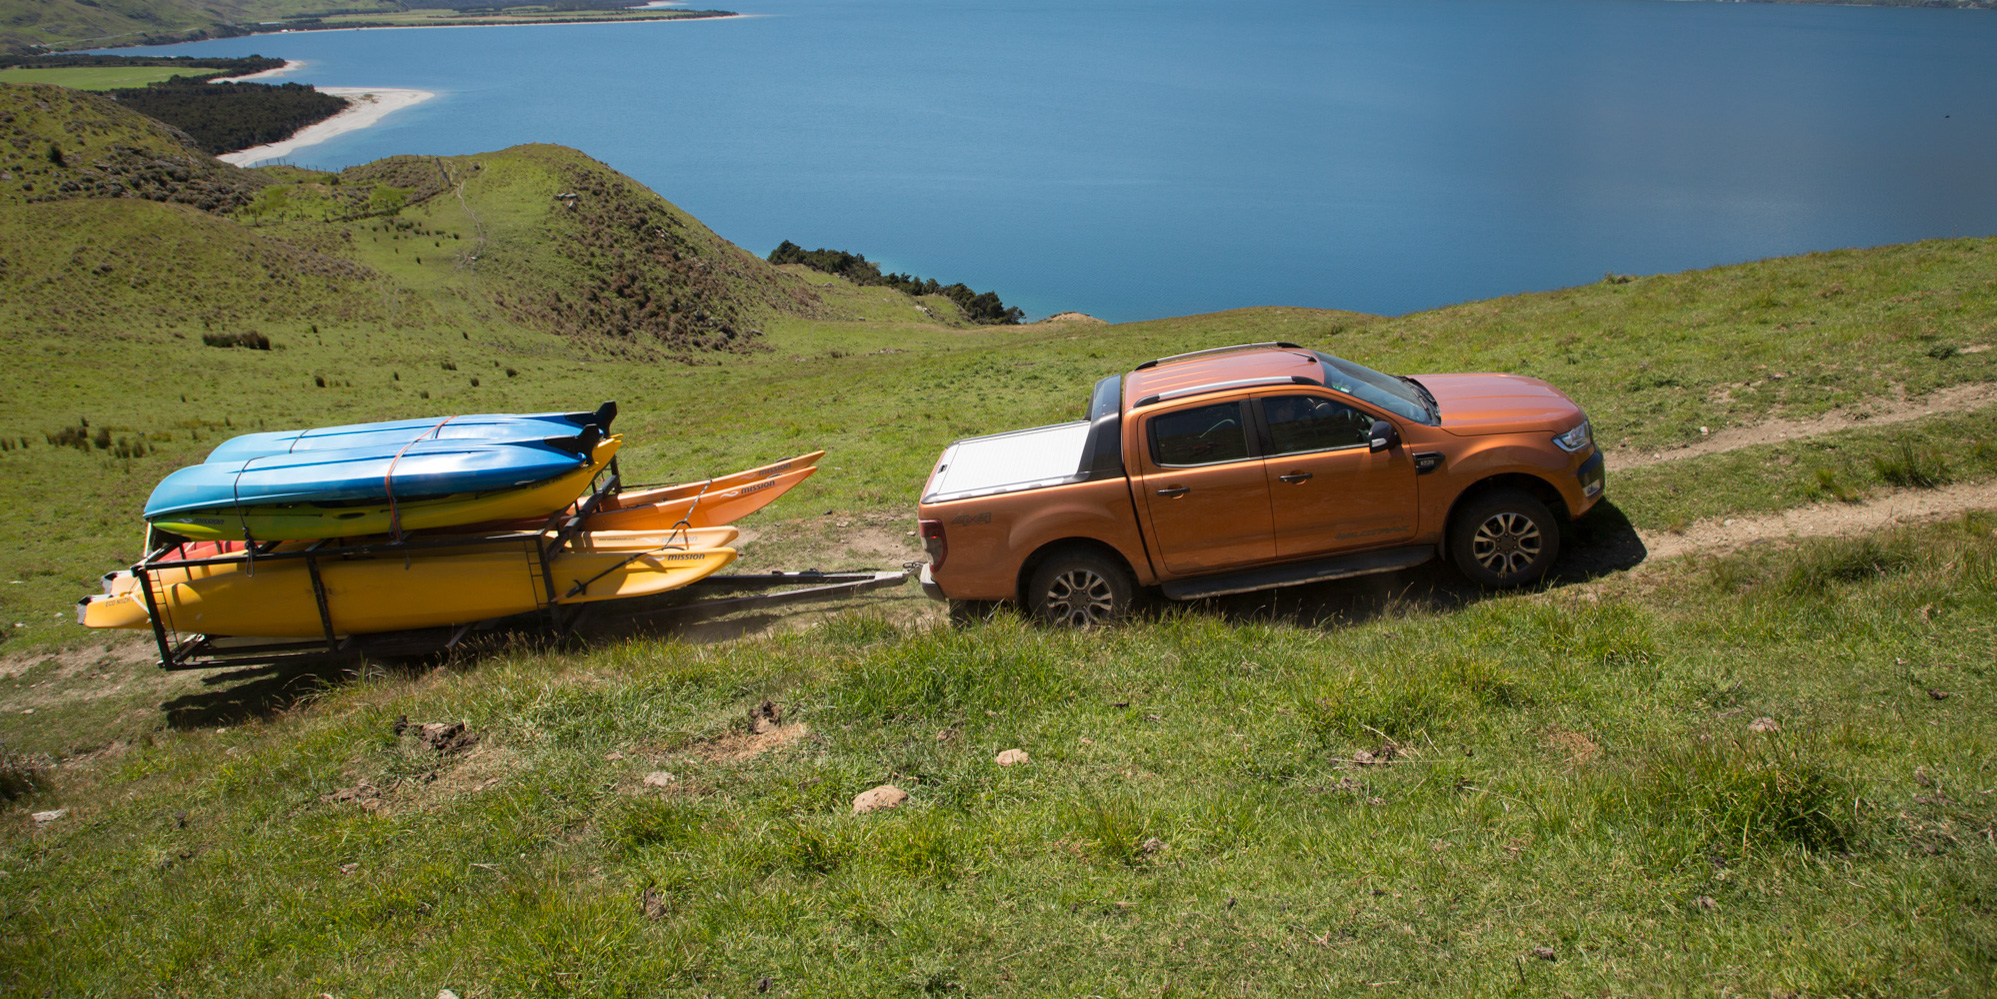 Wonderful 2016 Ford Ranger  Lifestyle Adventure In New Zealand